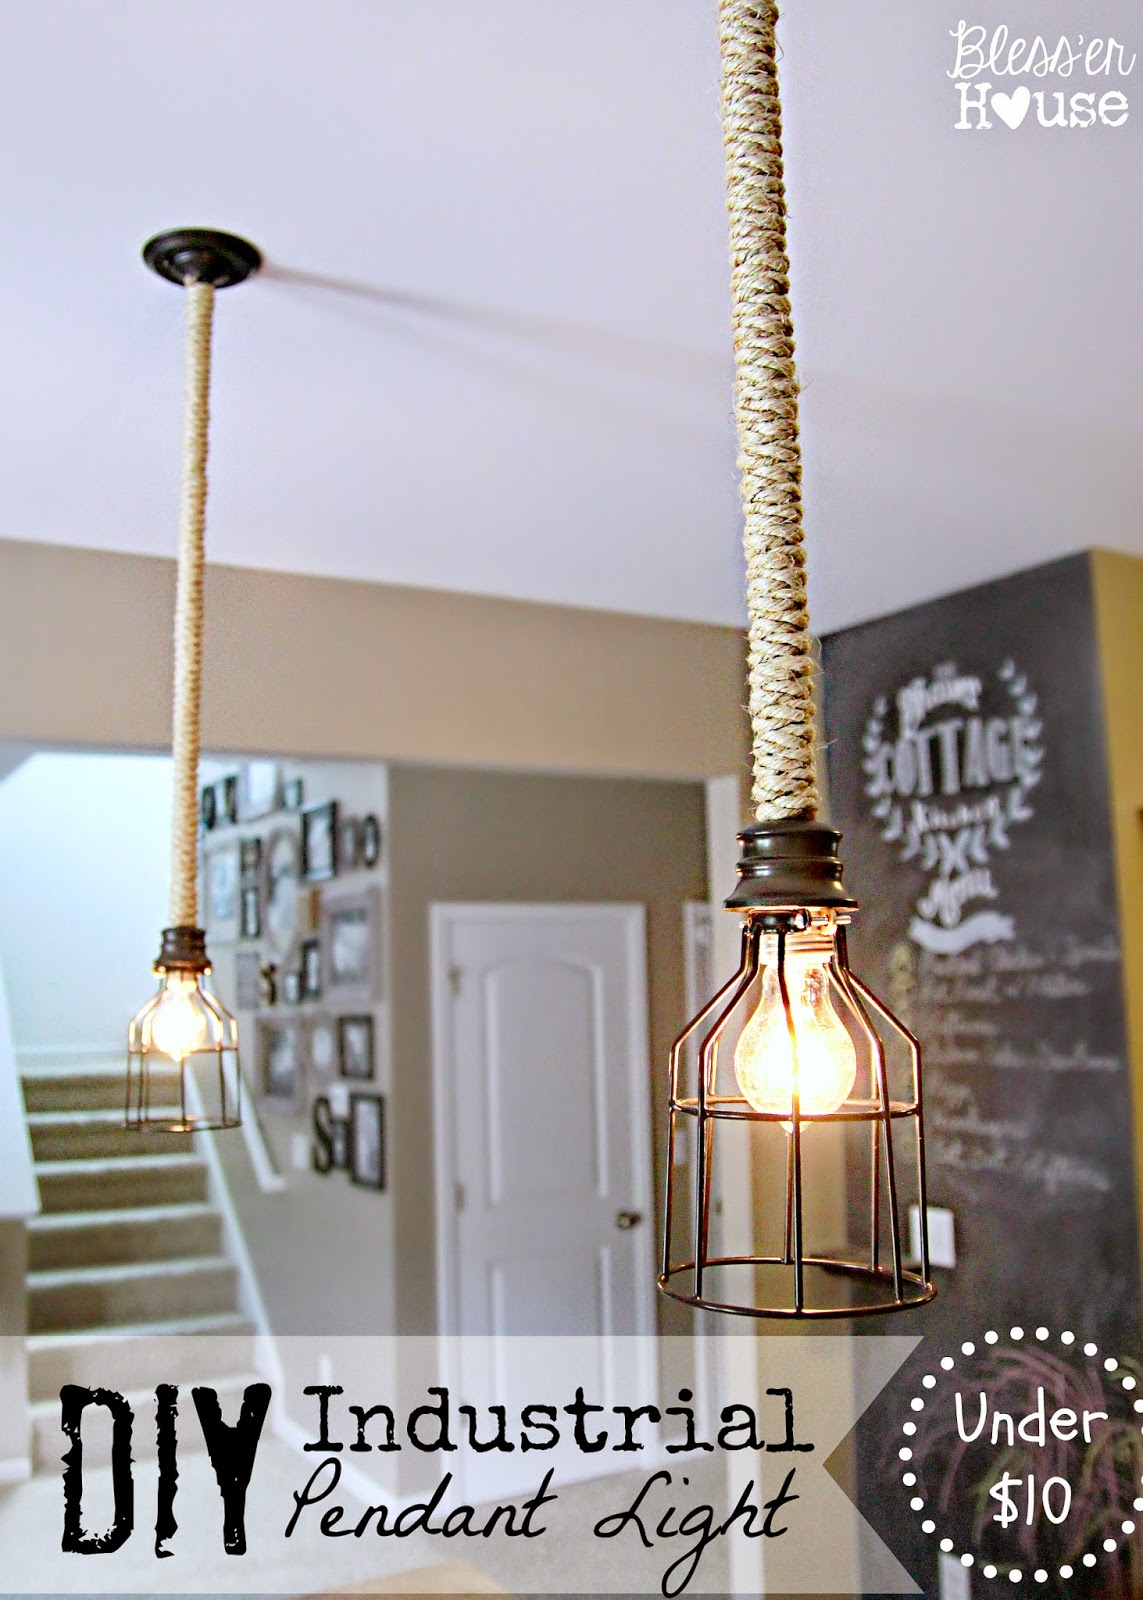 Diy industrial pendant light for under 10 blesser house diy industrial pendant light blesser house aloadofball Gallery